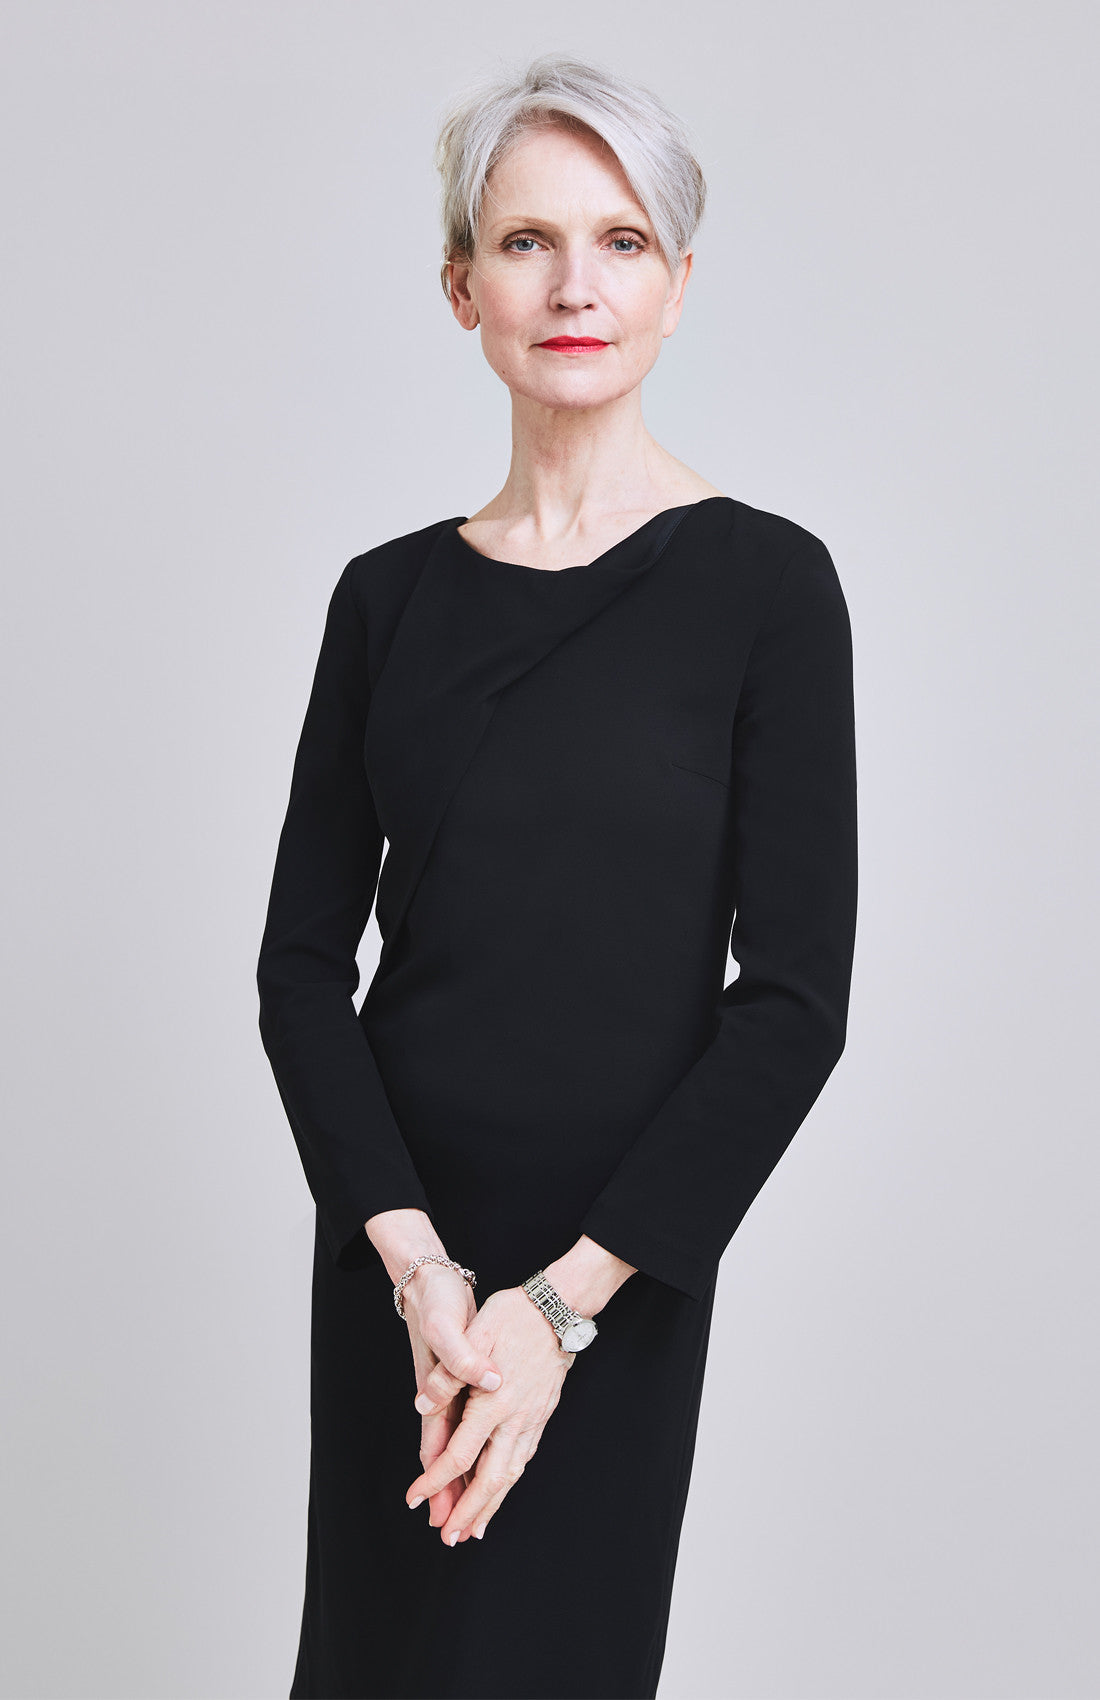 Long sleeve knee length black office shift dress for work